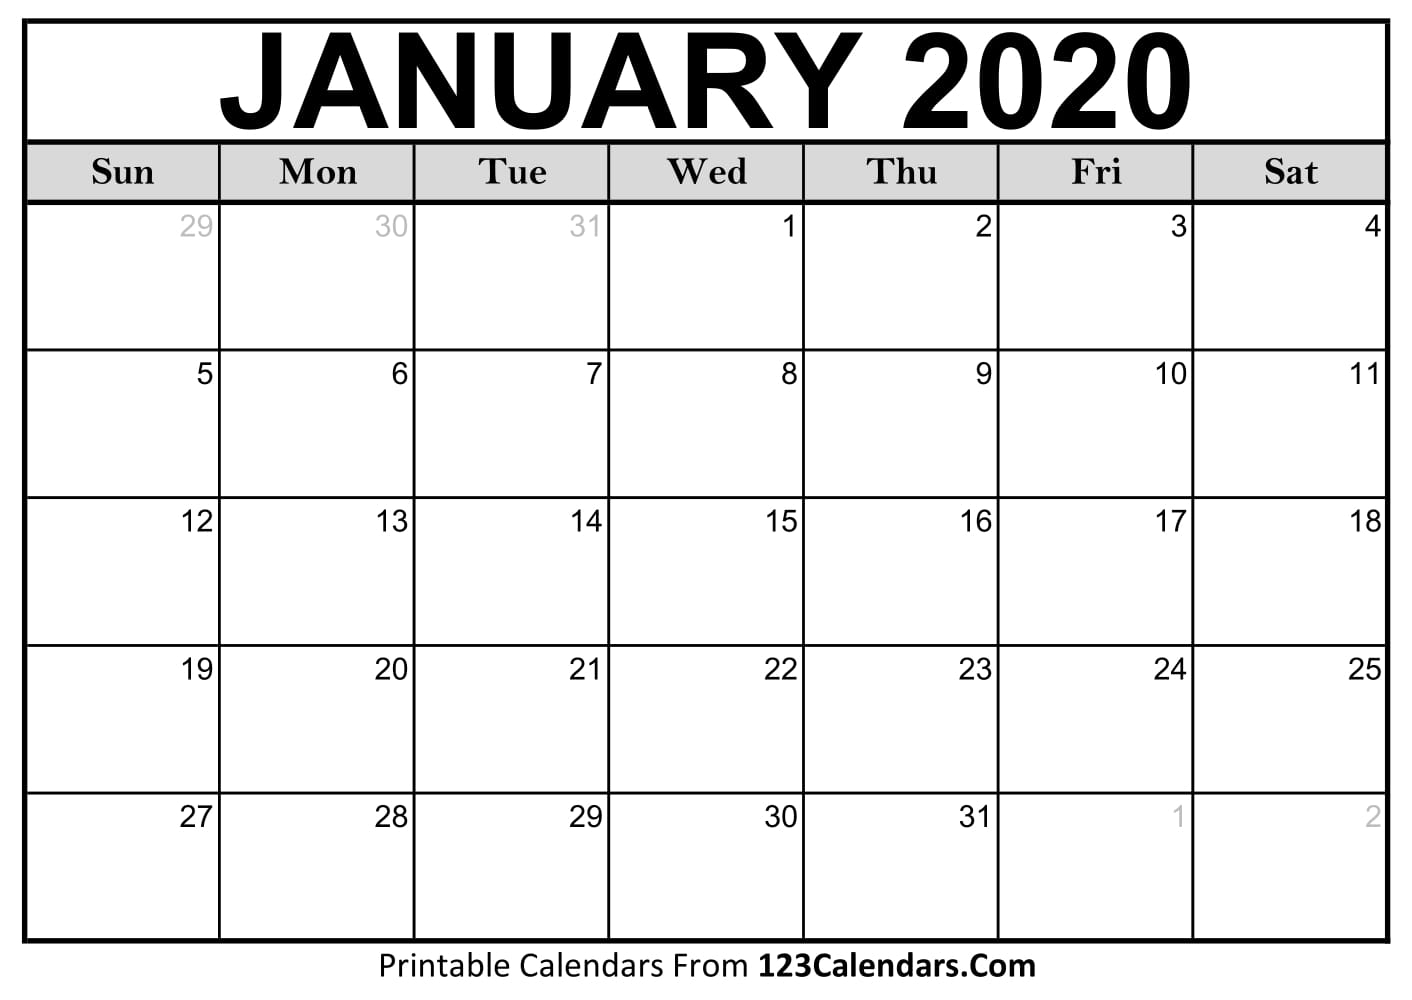 January 2020 Printable Calendar | 123Calendars within Free Calendars2020Big Numbers